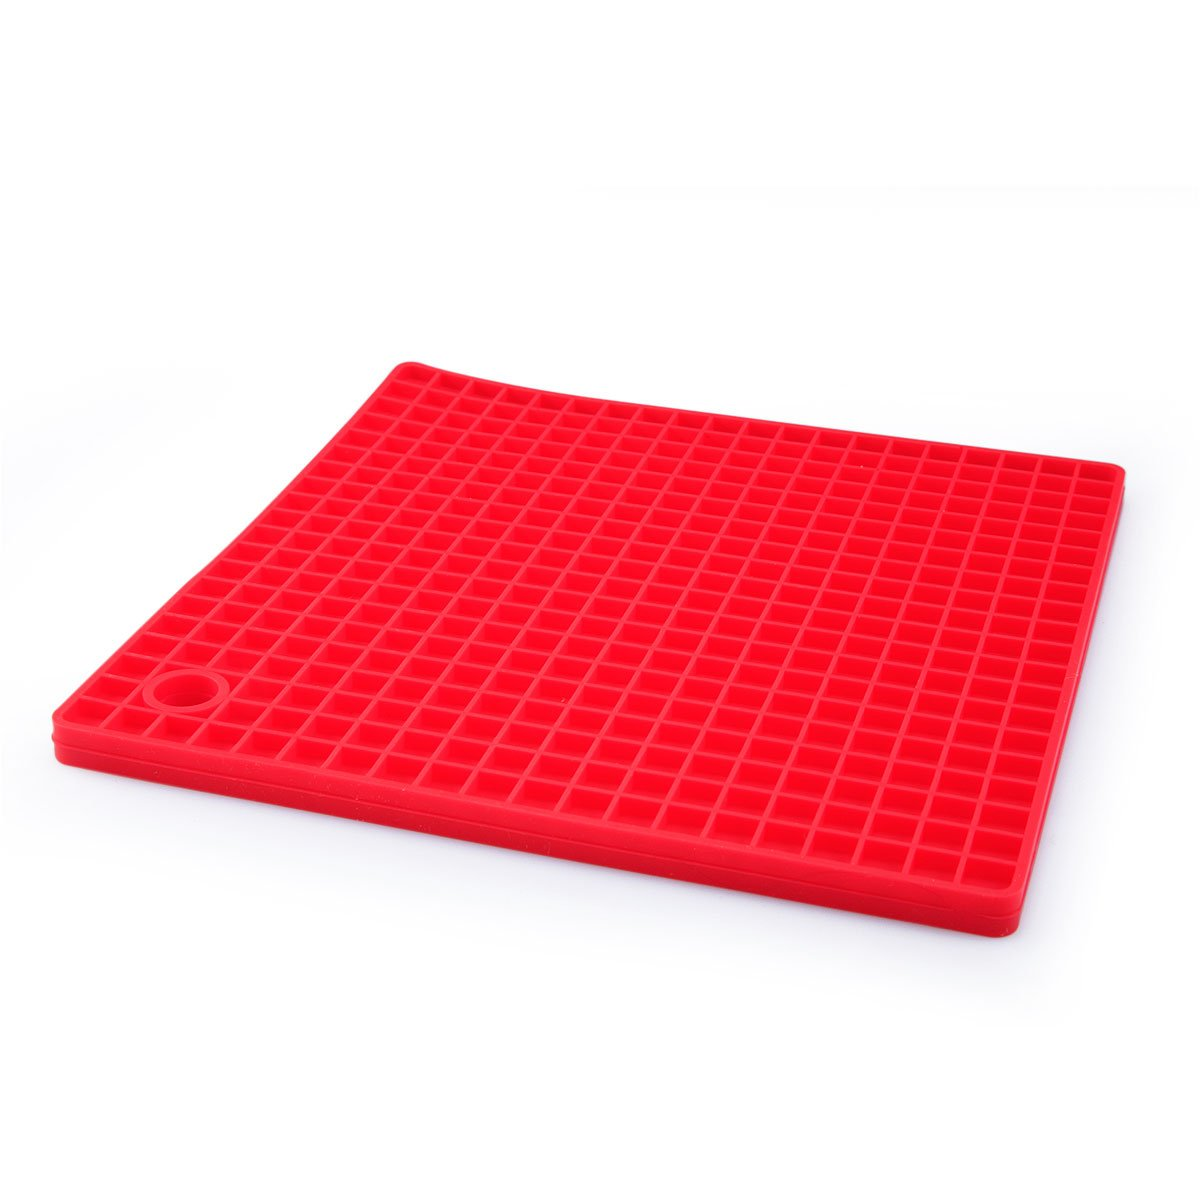 Gloriastore Silicone Placemats Set Of 4 Table Mats Heat Resistant Rubber  Red: Amazon: Kitchen & Home